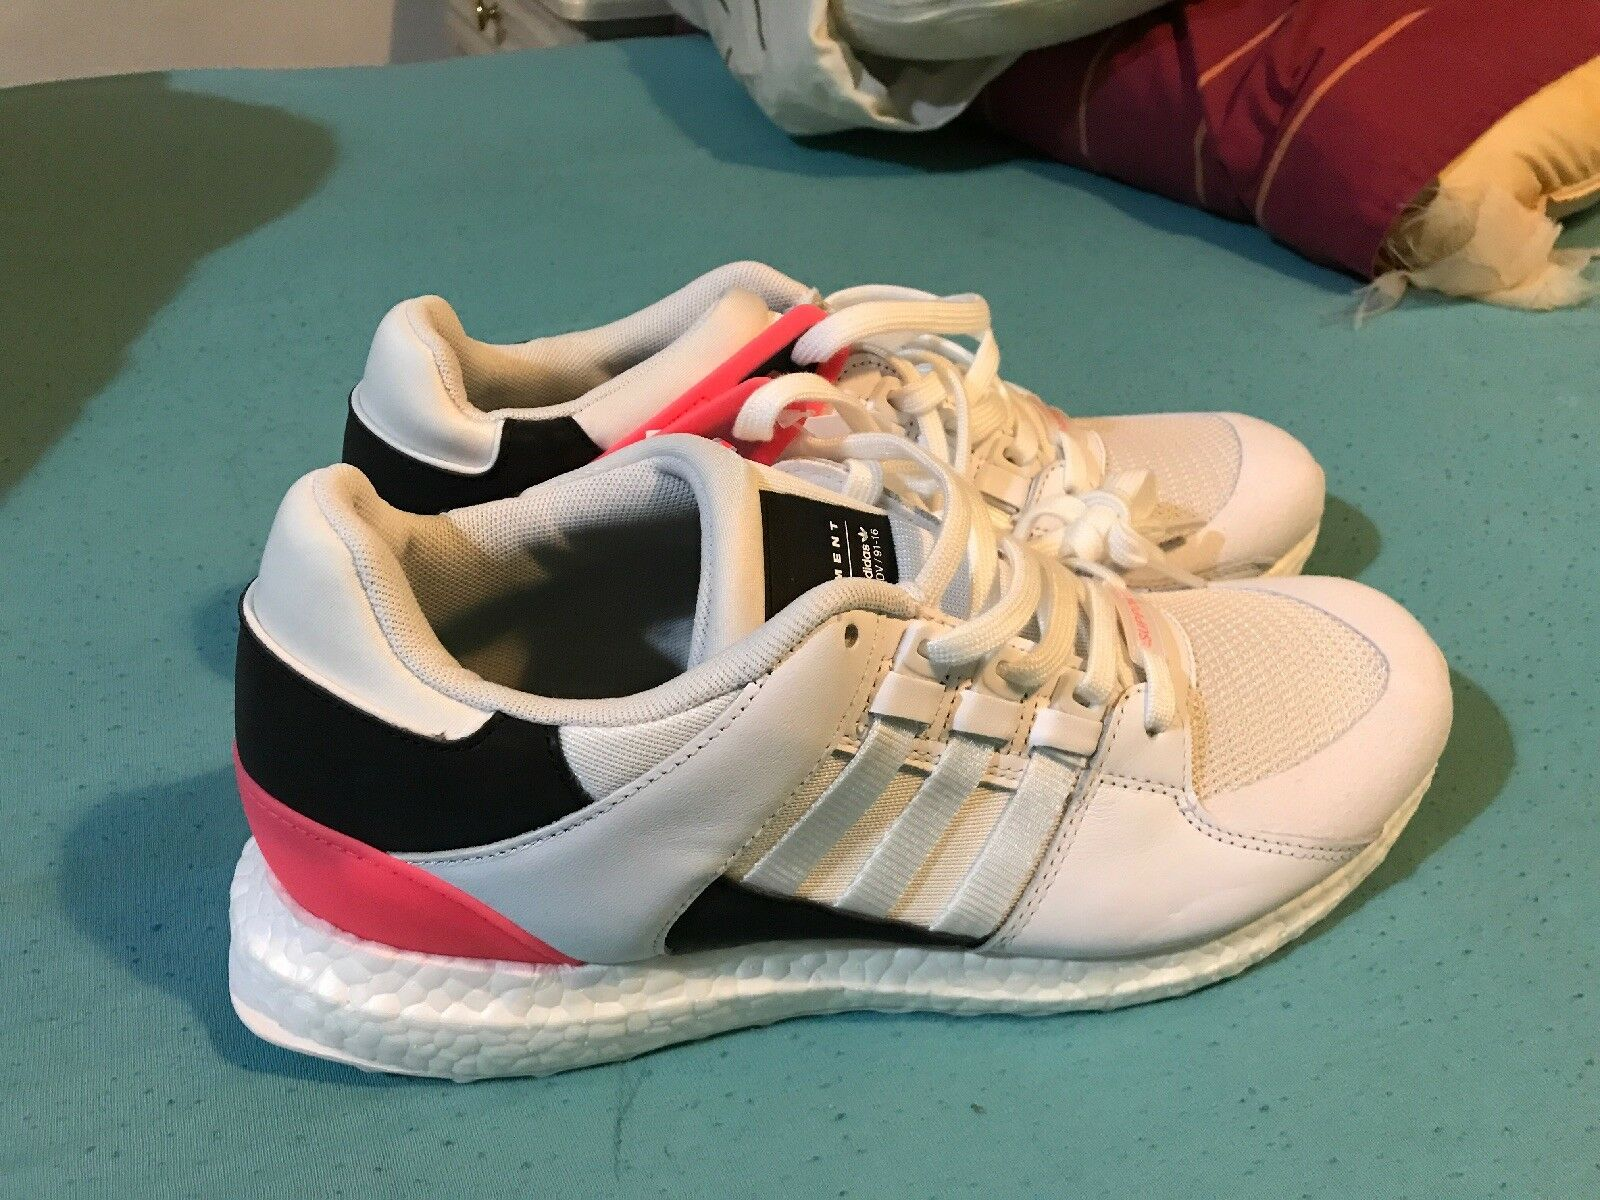 Adidas EQT SUPPORT ULTRA In Weiß Uk 10 US 10 1 2 FR 44 2 3